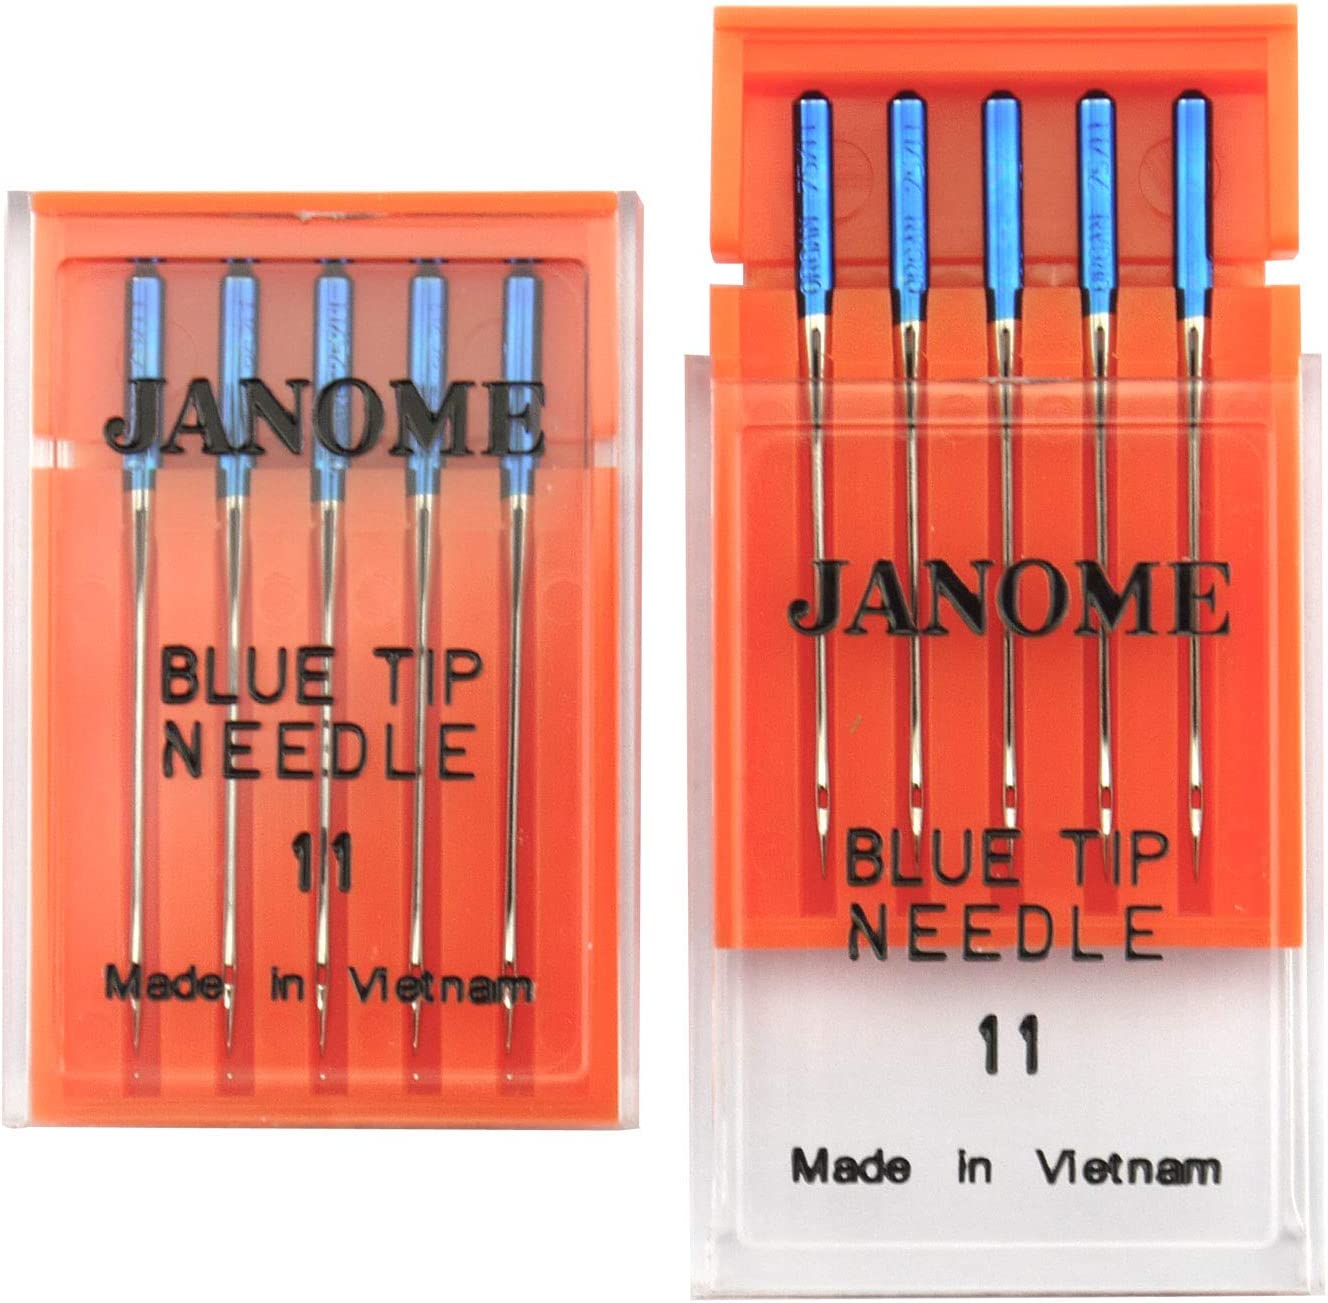 DREAMSTITCH 990311000 10 PCS Blue Tip Blue Stitch Needles Size 11 Number 990311000 for Janome 990311000